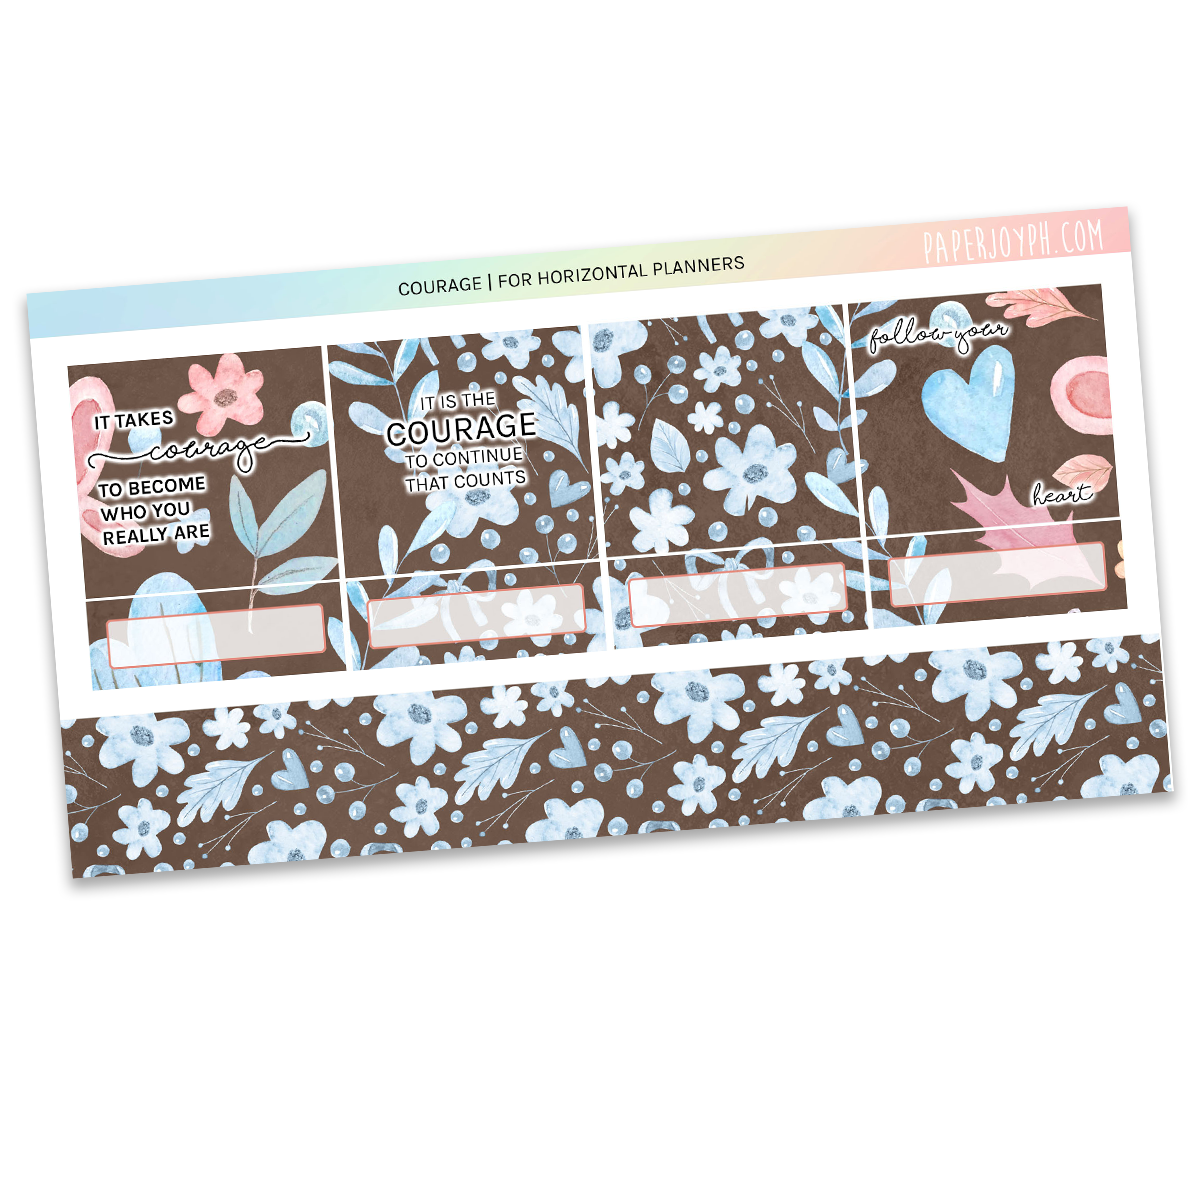 HORIZONTAL PLANNER STICKER KIT | Courage